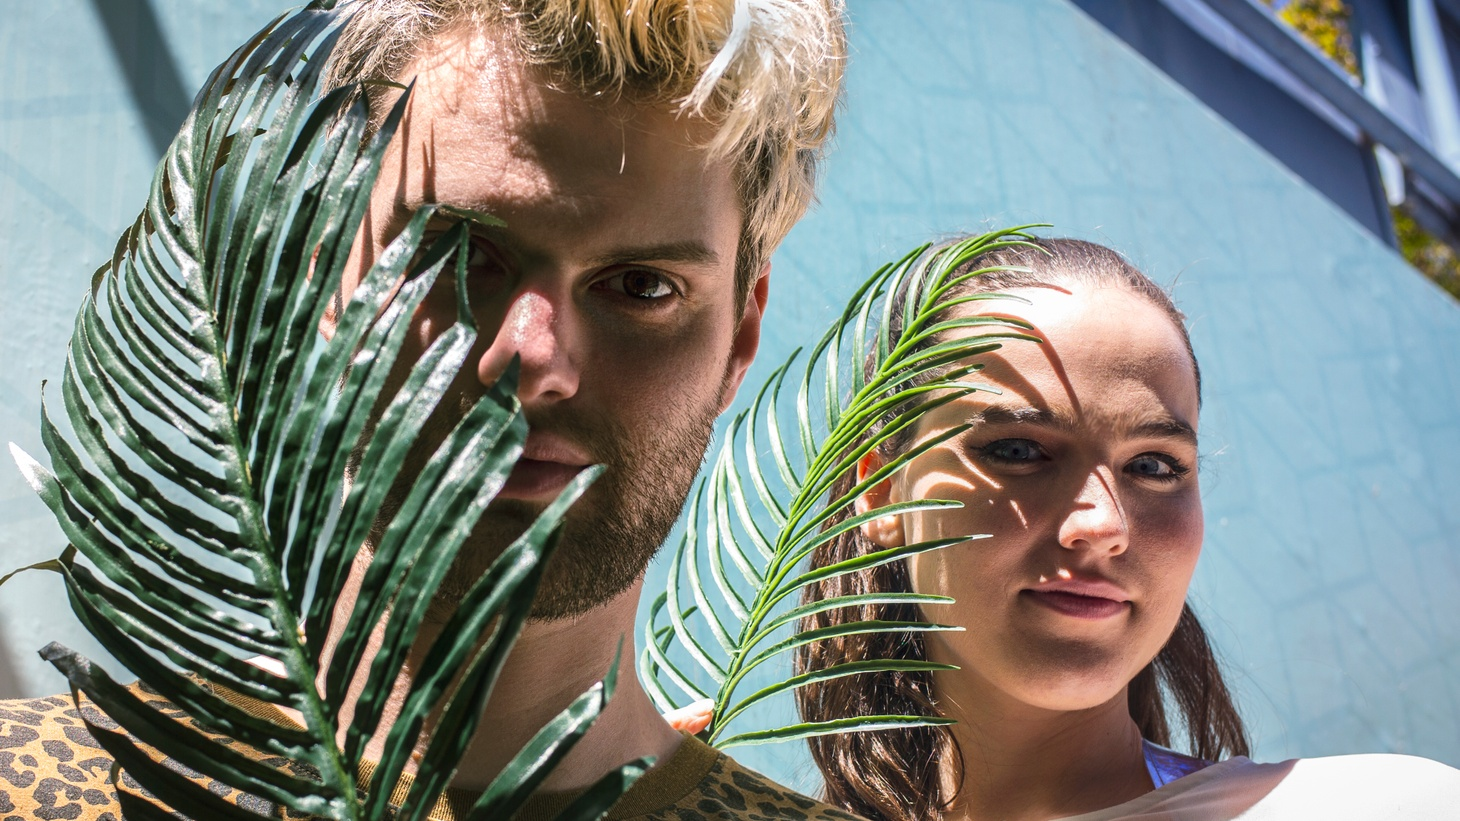 """Sofi Tukker's music is pure joy. Their most recent live performance in our studio was very special as they brought along a percussionist to add an extra layer of fun. Enjoy this exclusive version of """"Energia,"""" recorded live on MBE."""